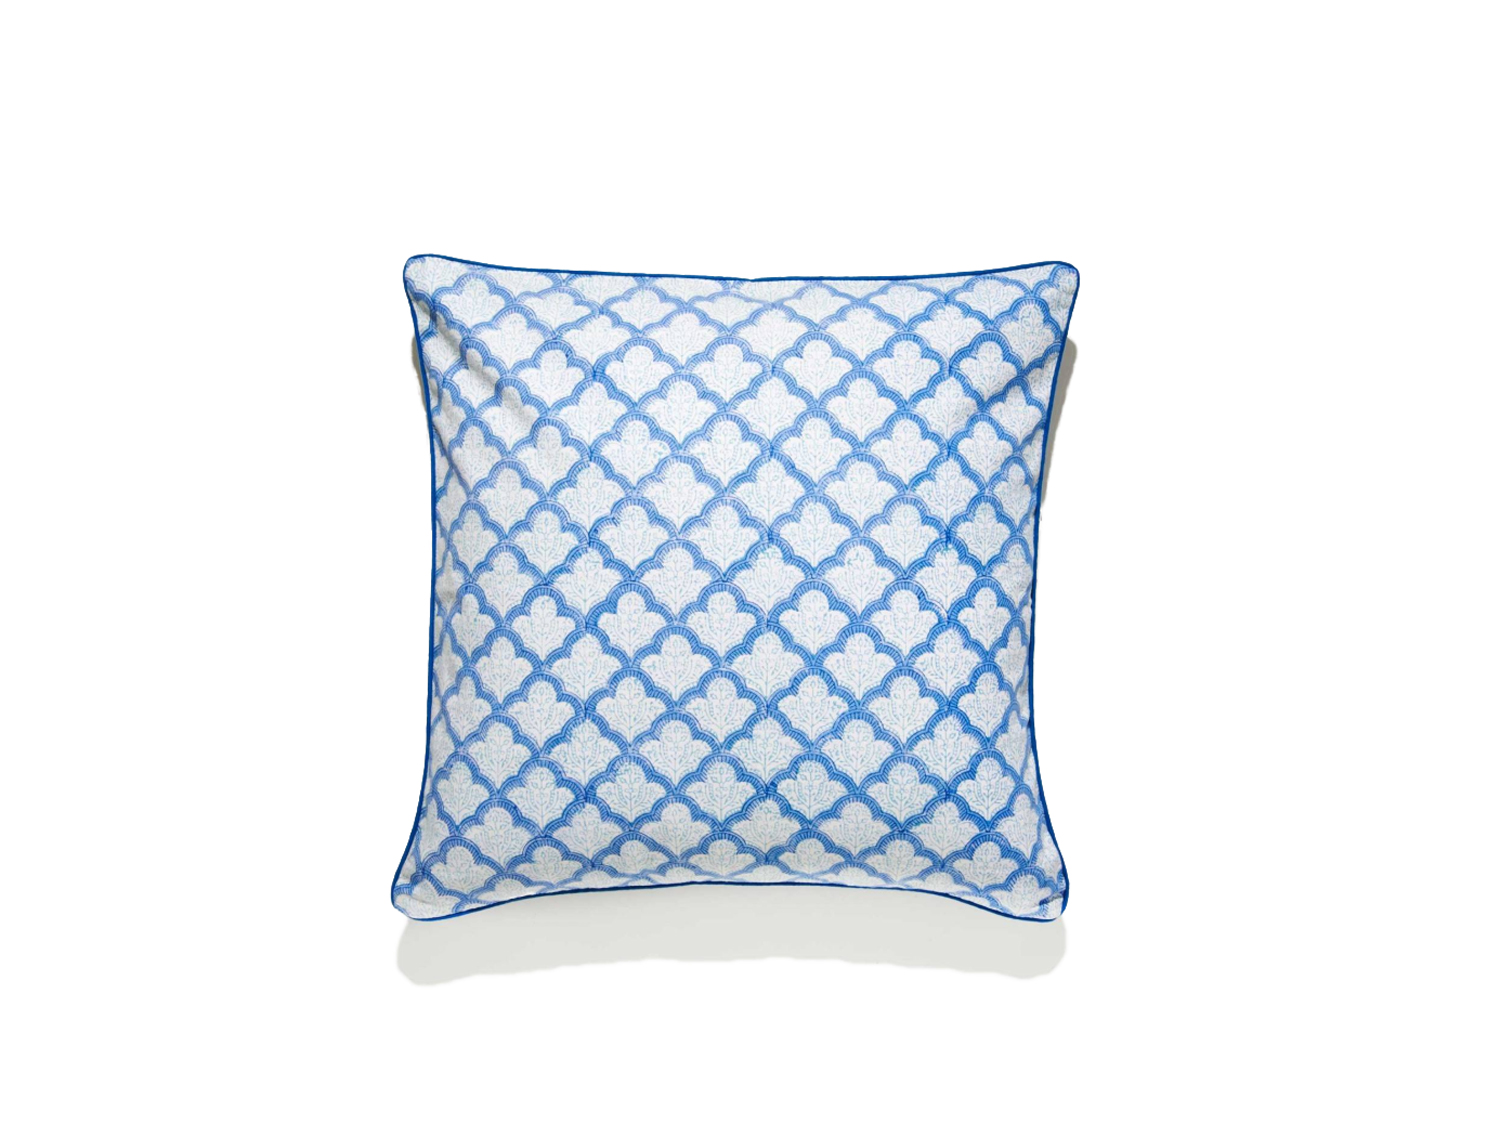 Details about ROBERTA ROLLER RABBIT Blue Jemina Decorative Pillow Cover 22  x 22 $60 NEW